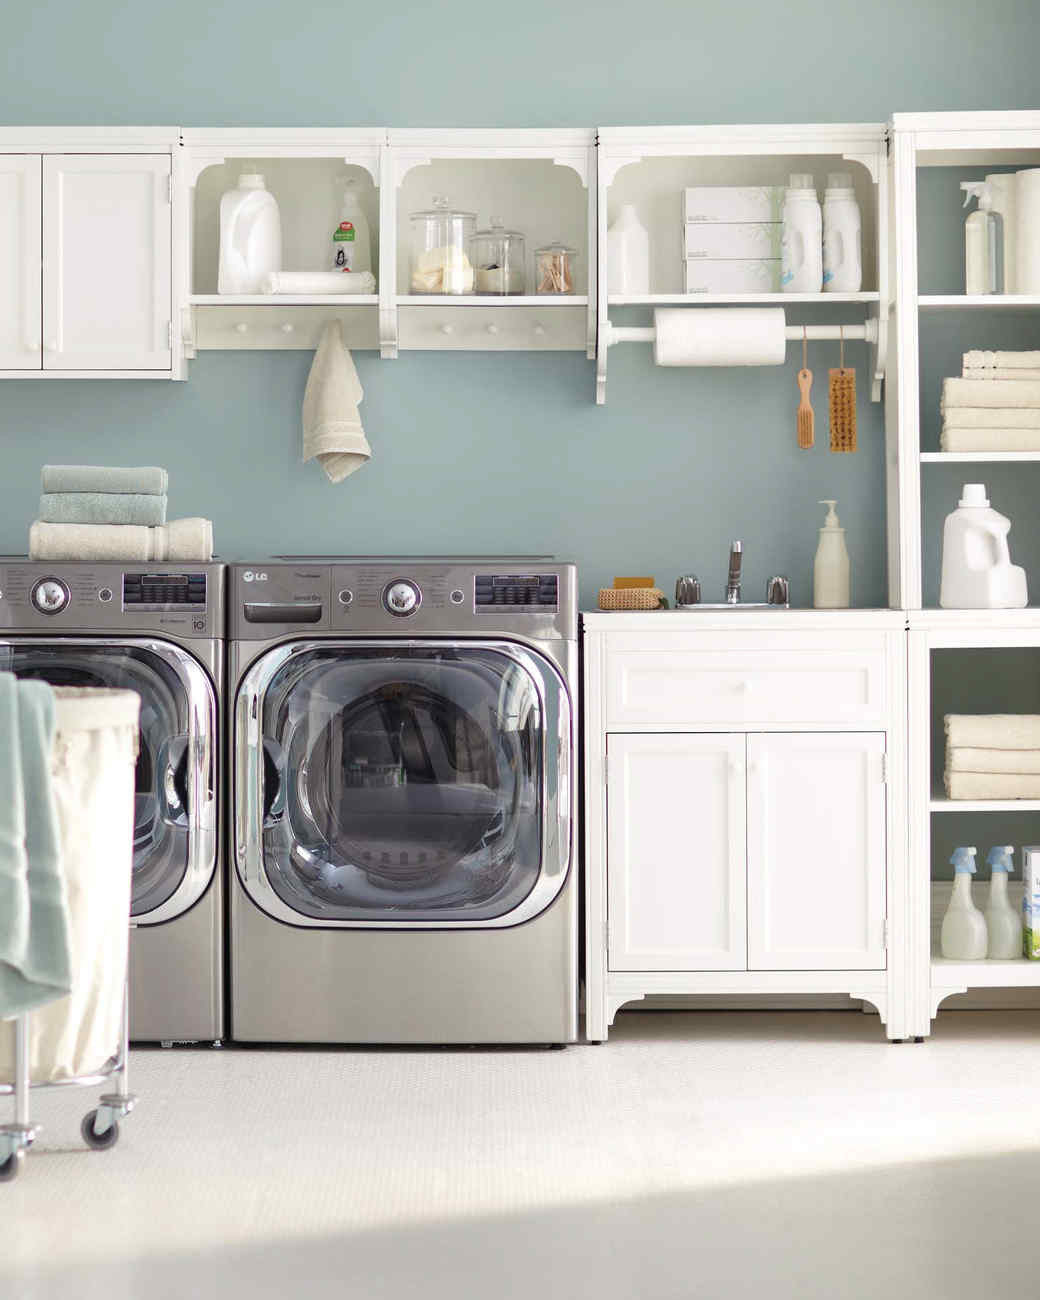 Best ideas about Laundry Room Images . Save or Pin 12 Essential Laundry Room Organizing Ideas Now.